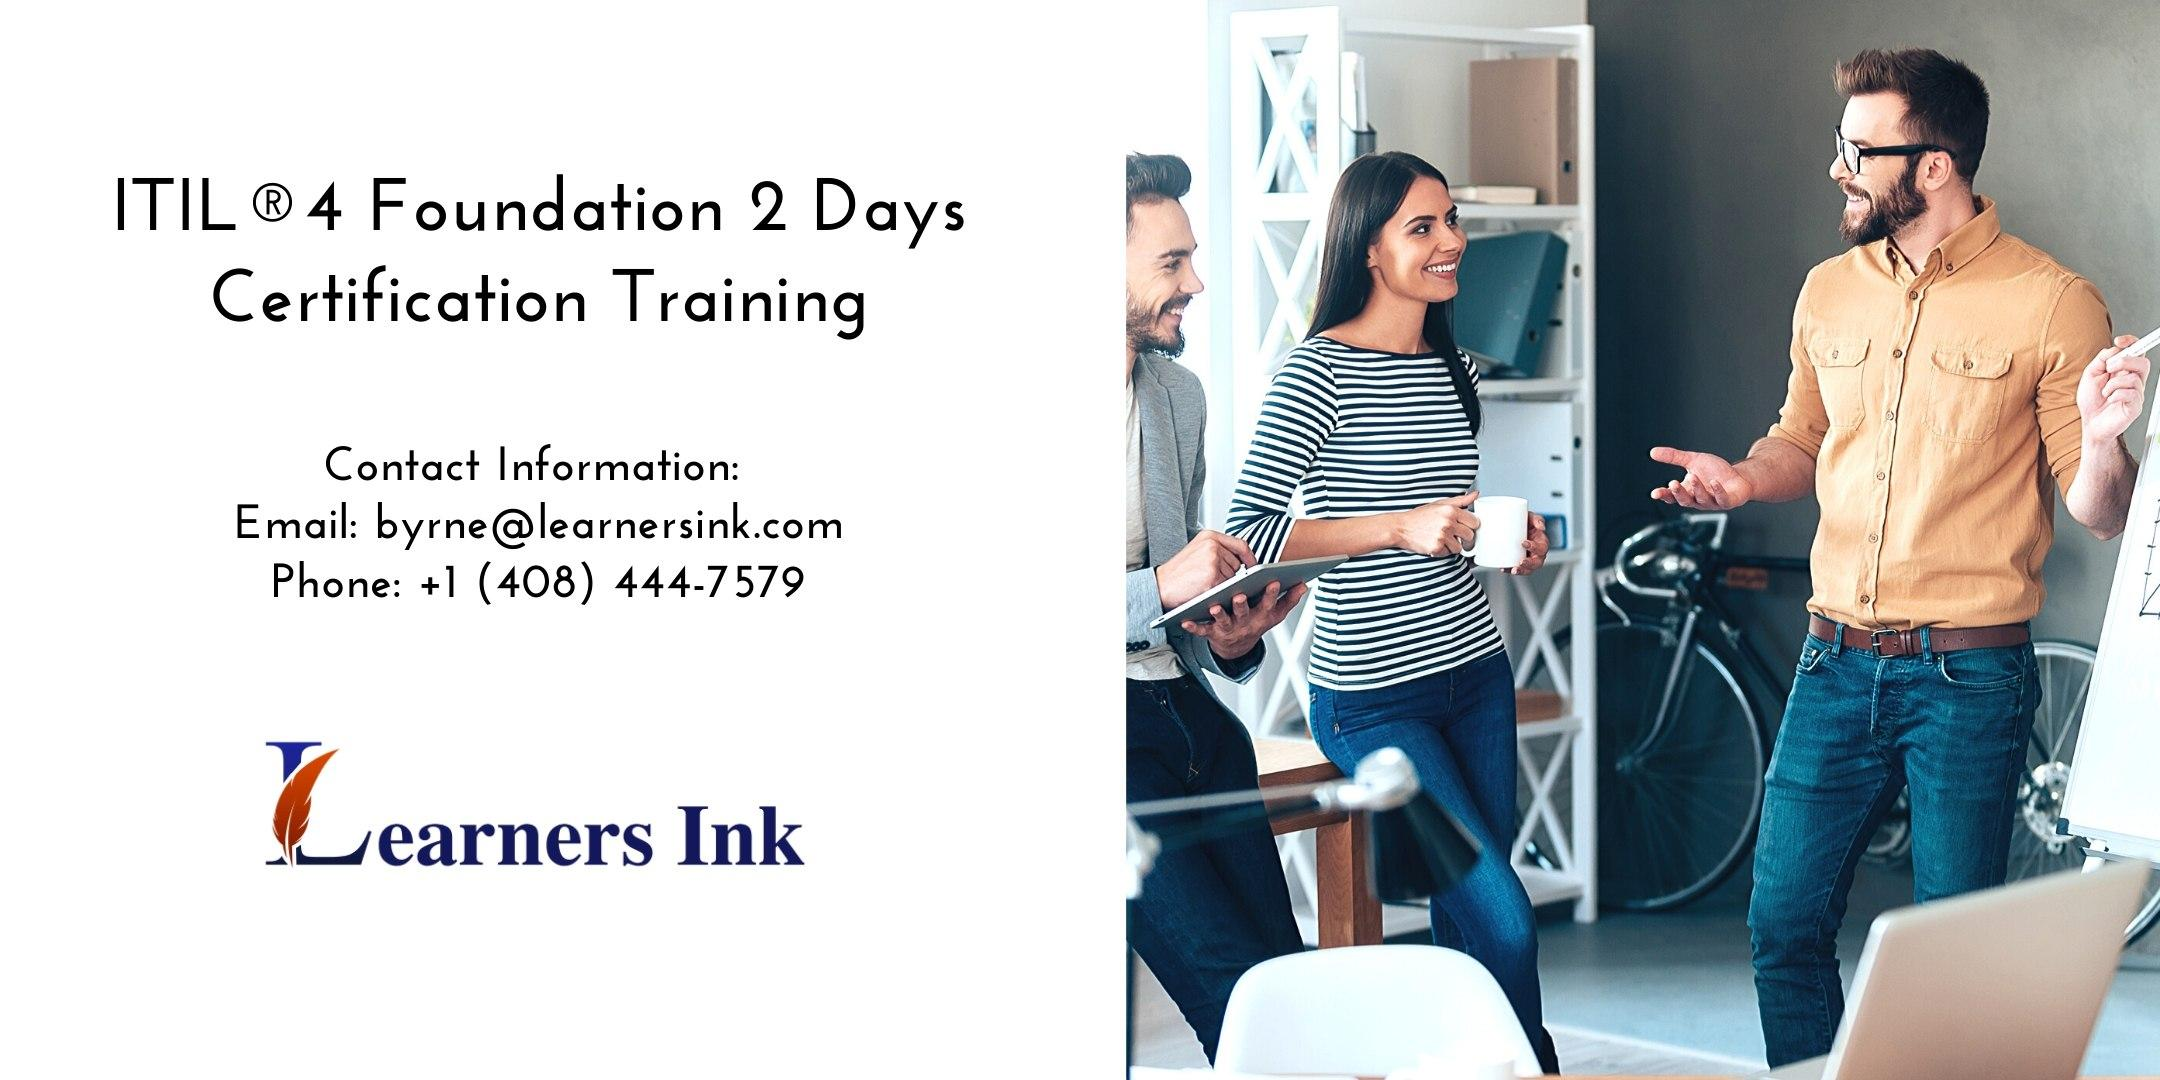 ITIL®4 Foundation 2 Days Certification Training in Montreal